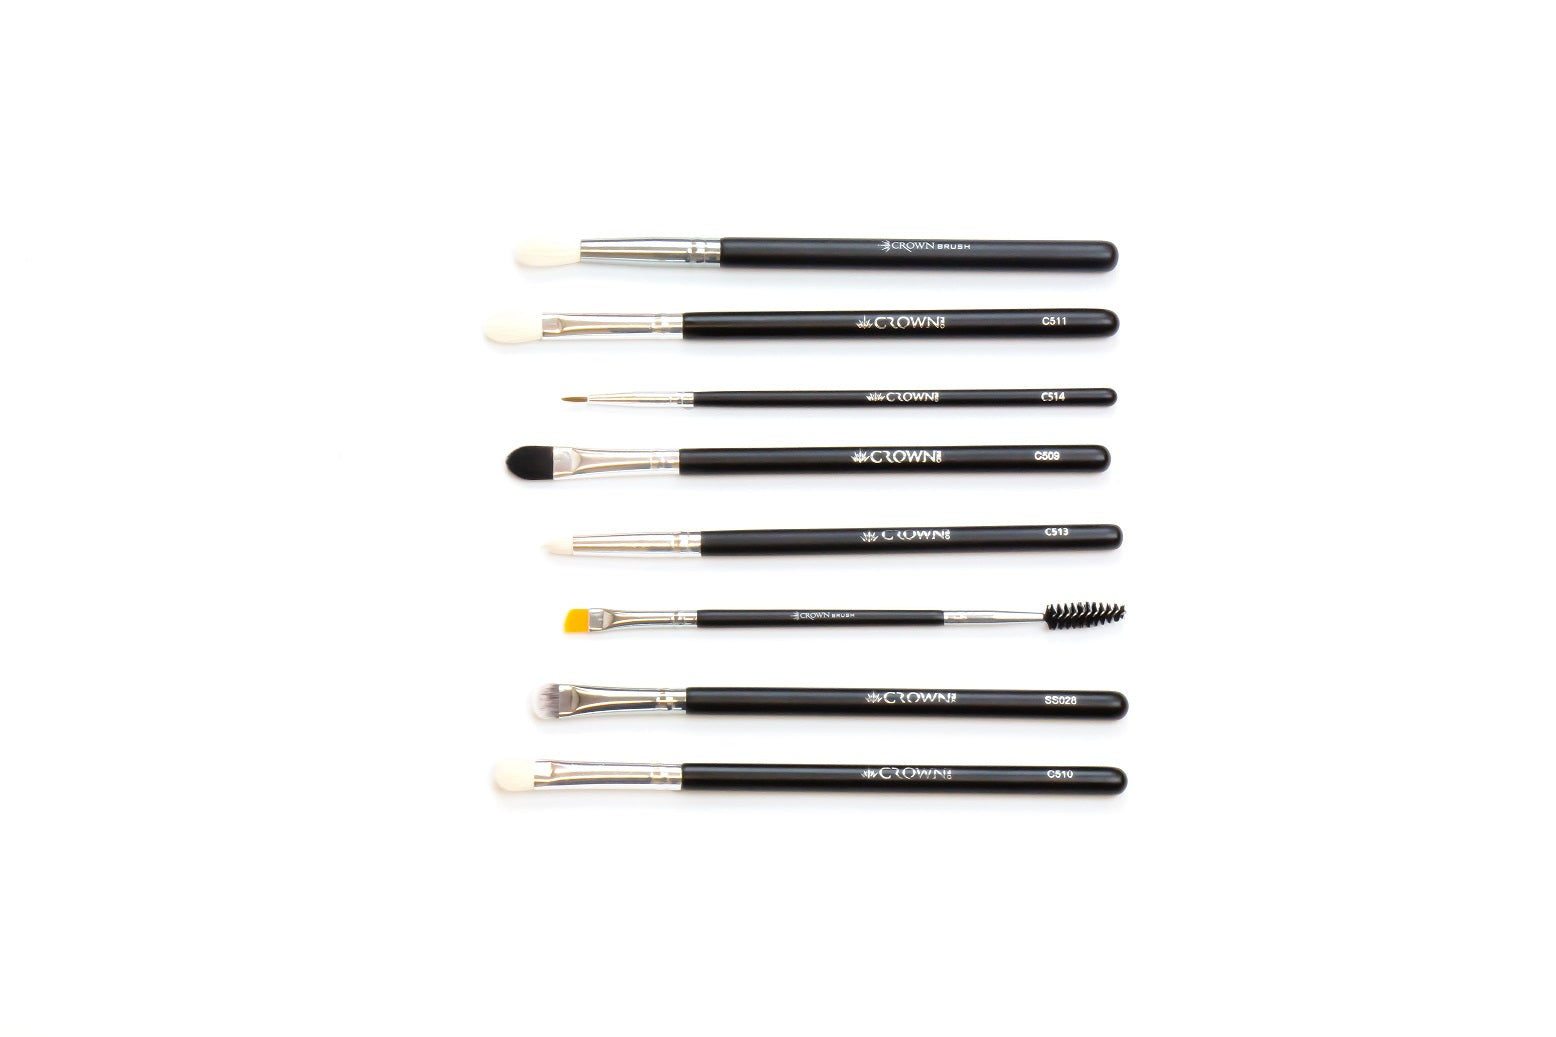 Eye Makeup Brush Set - Crownbrush